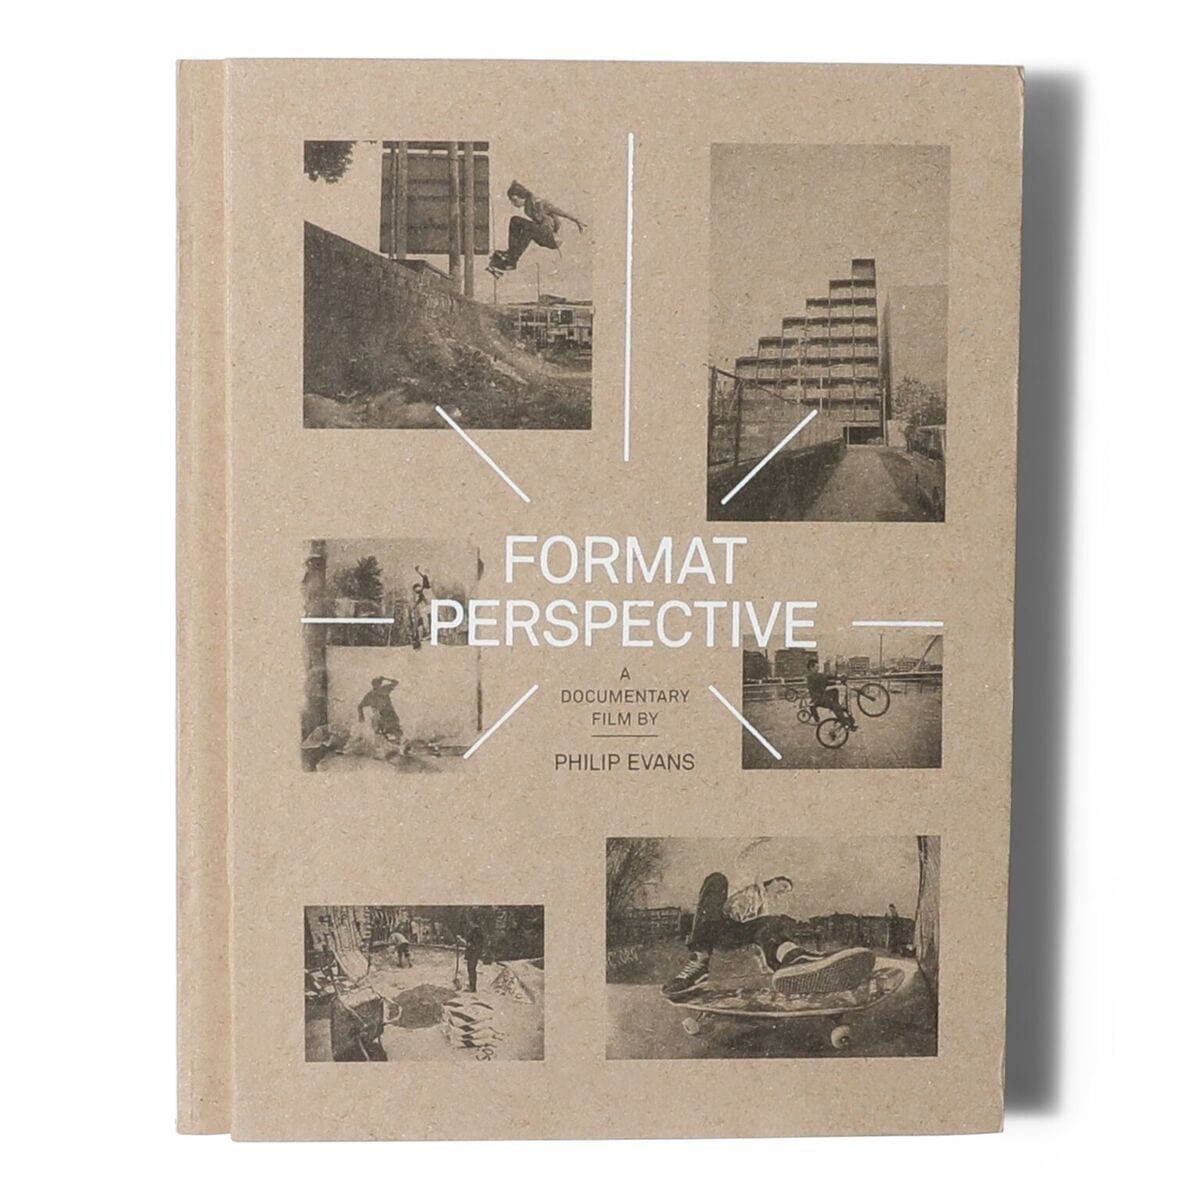 Carhartt W.I.P. FORMAT PERSPECTIVE BOOK/DVD by Philip Evans